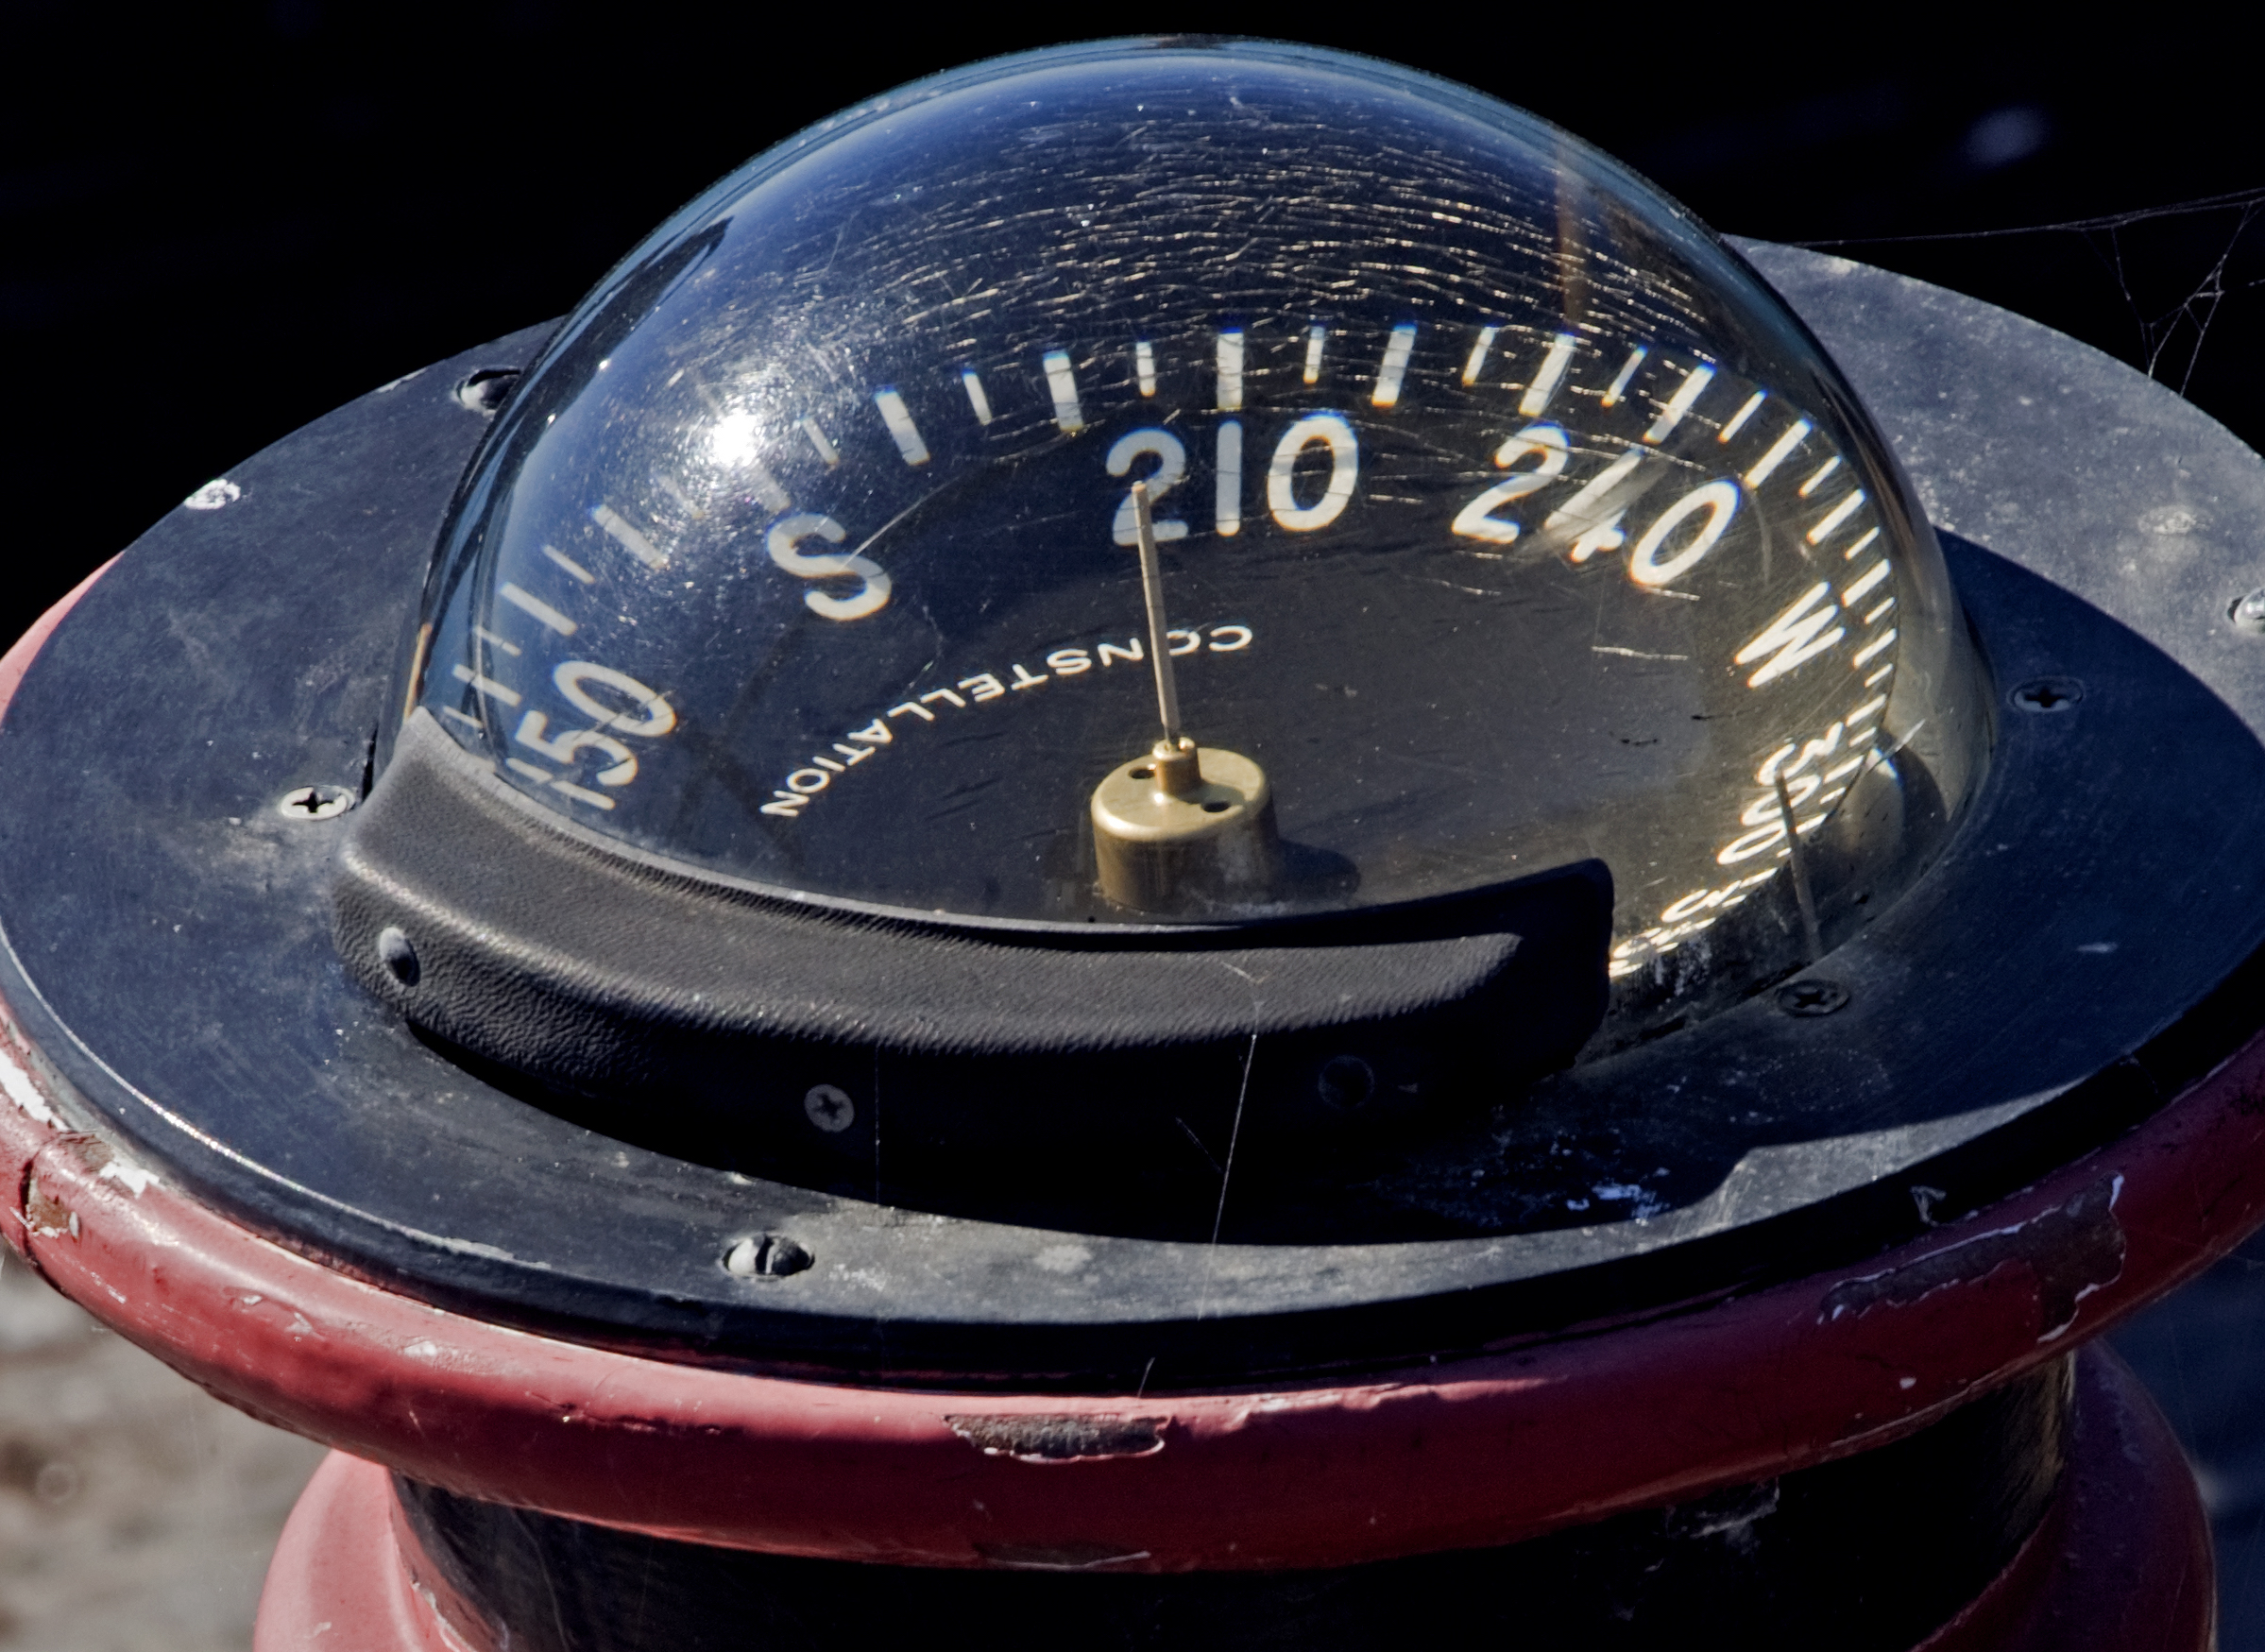 Ships-Compass-by-Kevin-Cole-CC-BY-2.0.jpg